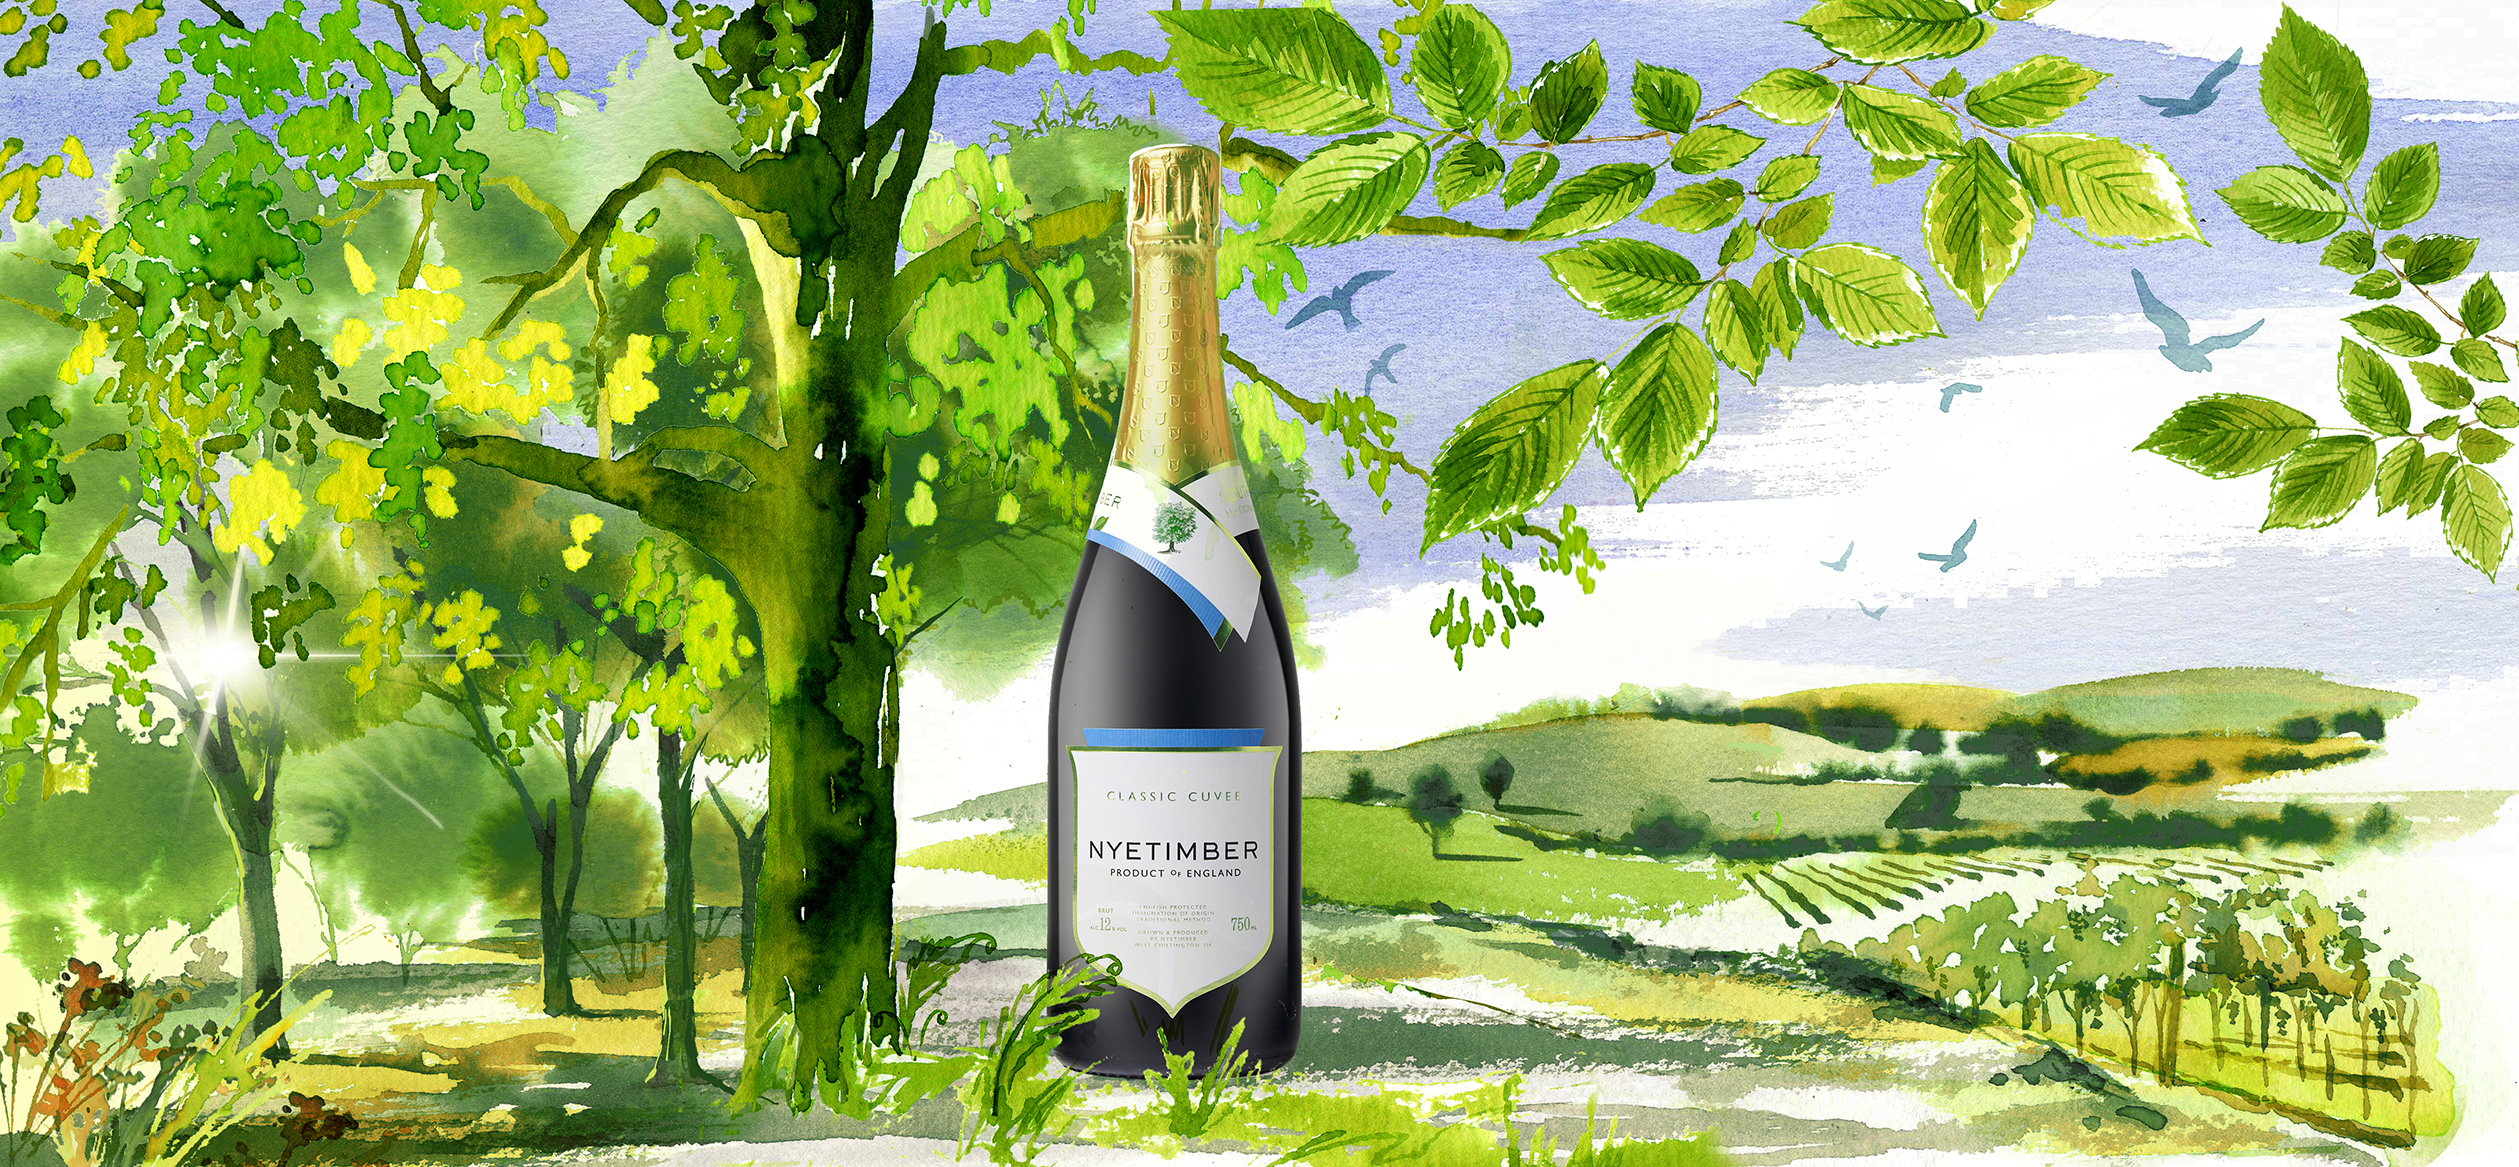 Illustration Projects Packaging Nyetimber Sparkling Wine Wines Online Publicity